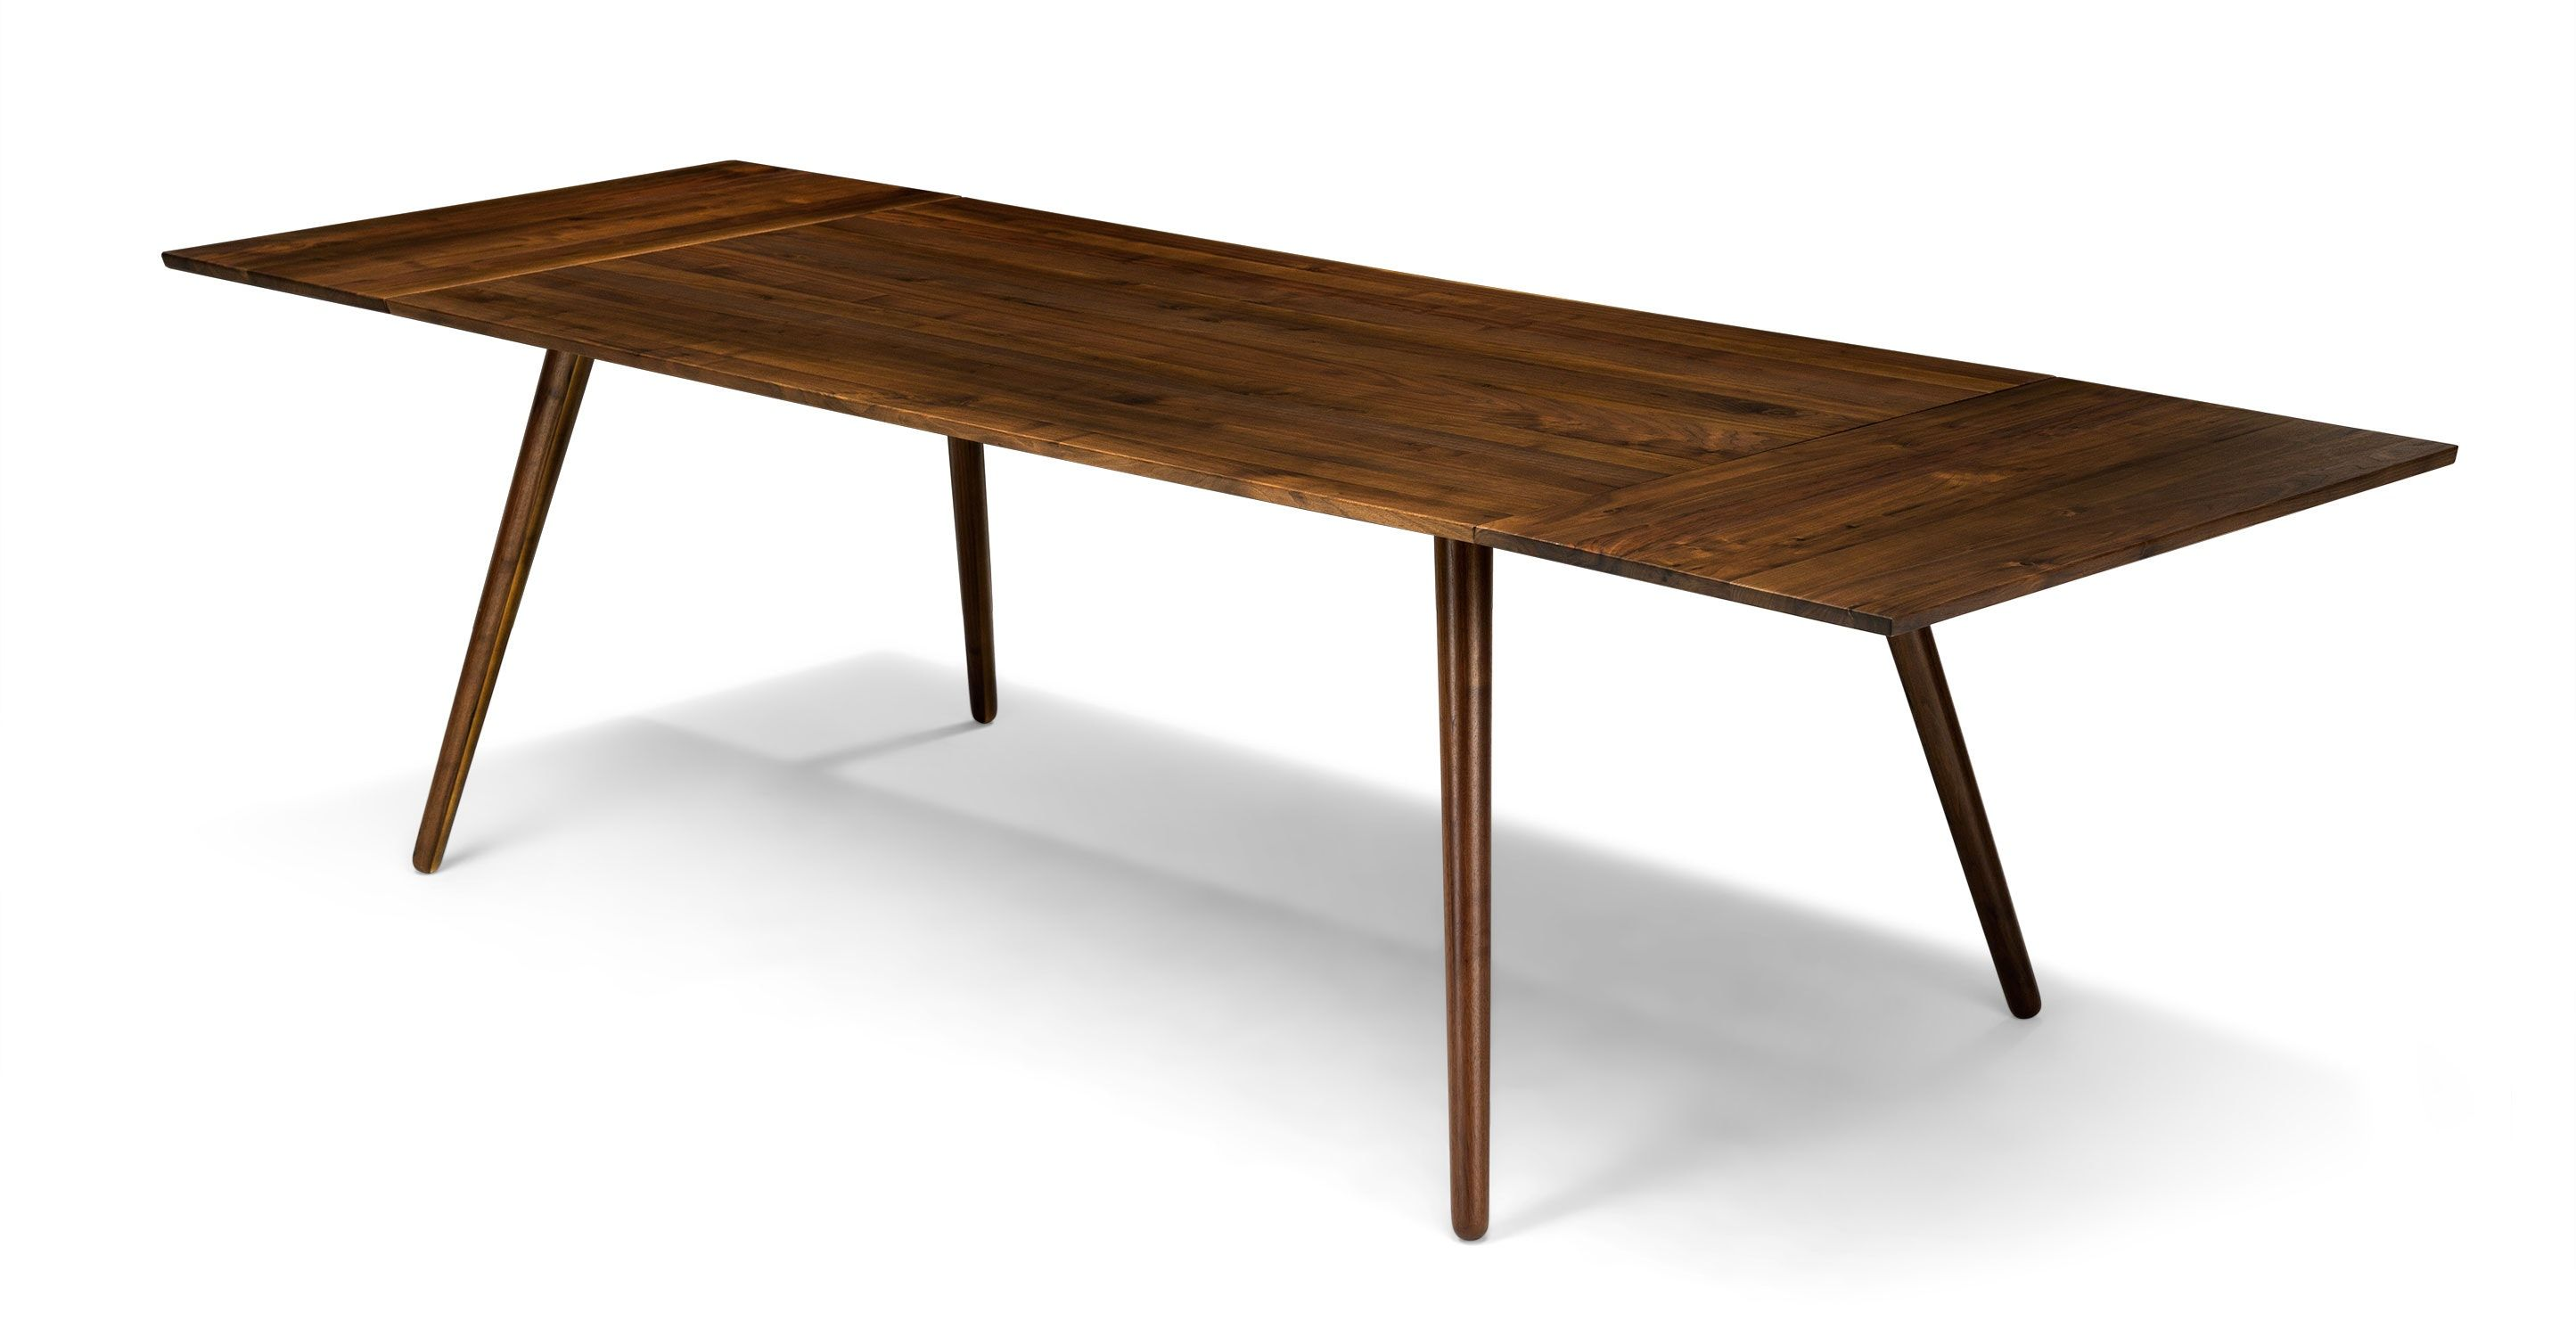 Extendable Dining Table 12 Person Walnut Wood  Article Seno Glamorous Walnut Dining Room Sets Design Inspiration